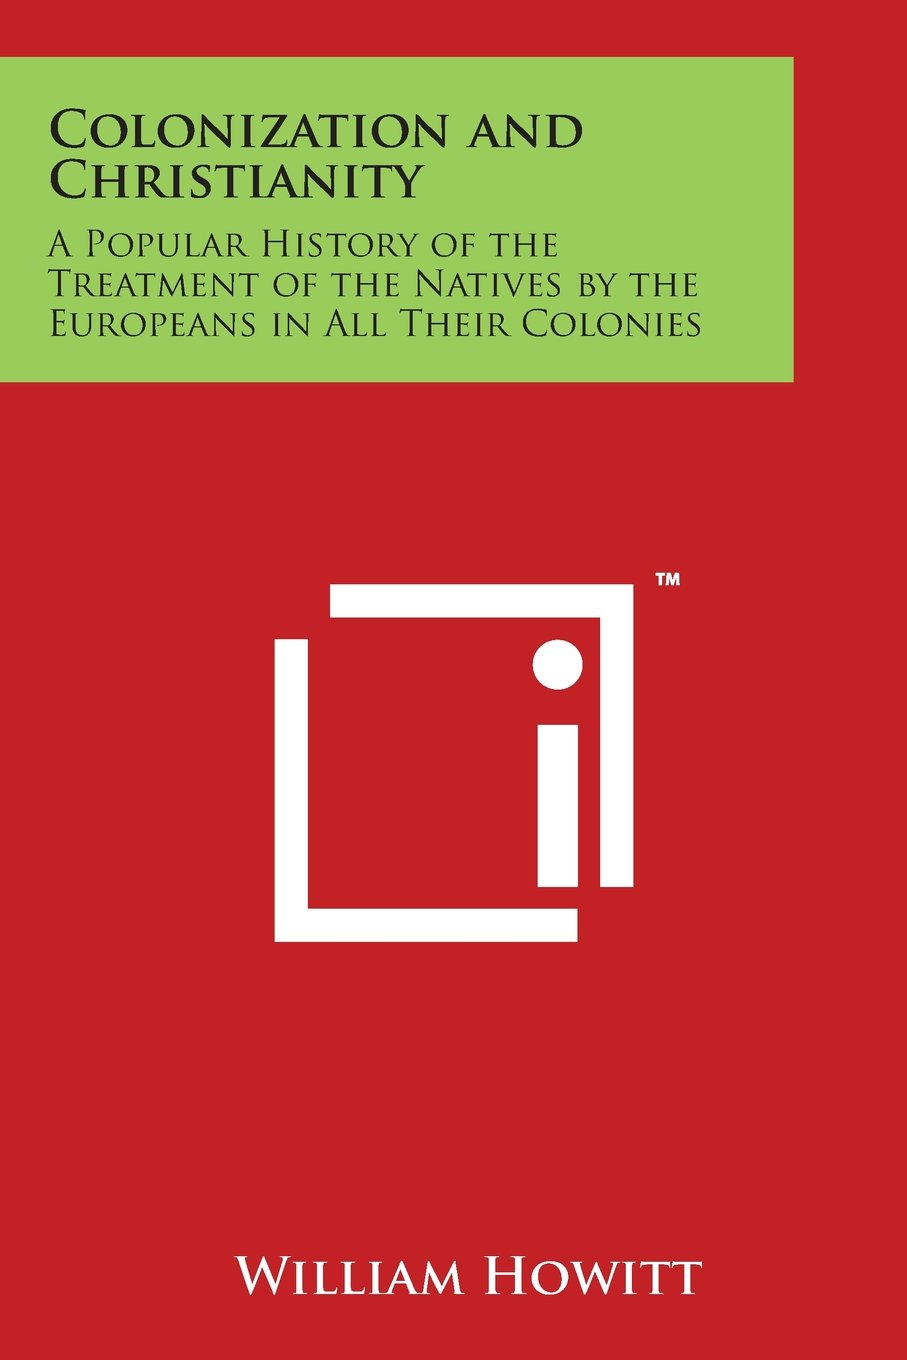 Colonization and Christianity: A Popular History of the Treatment of the Natives by the Europeans in All Their Colonies PDF